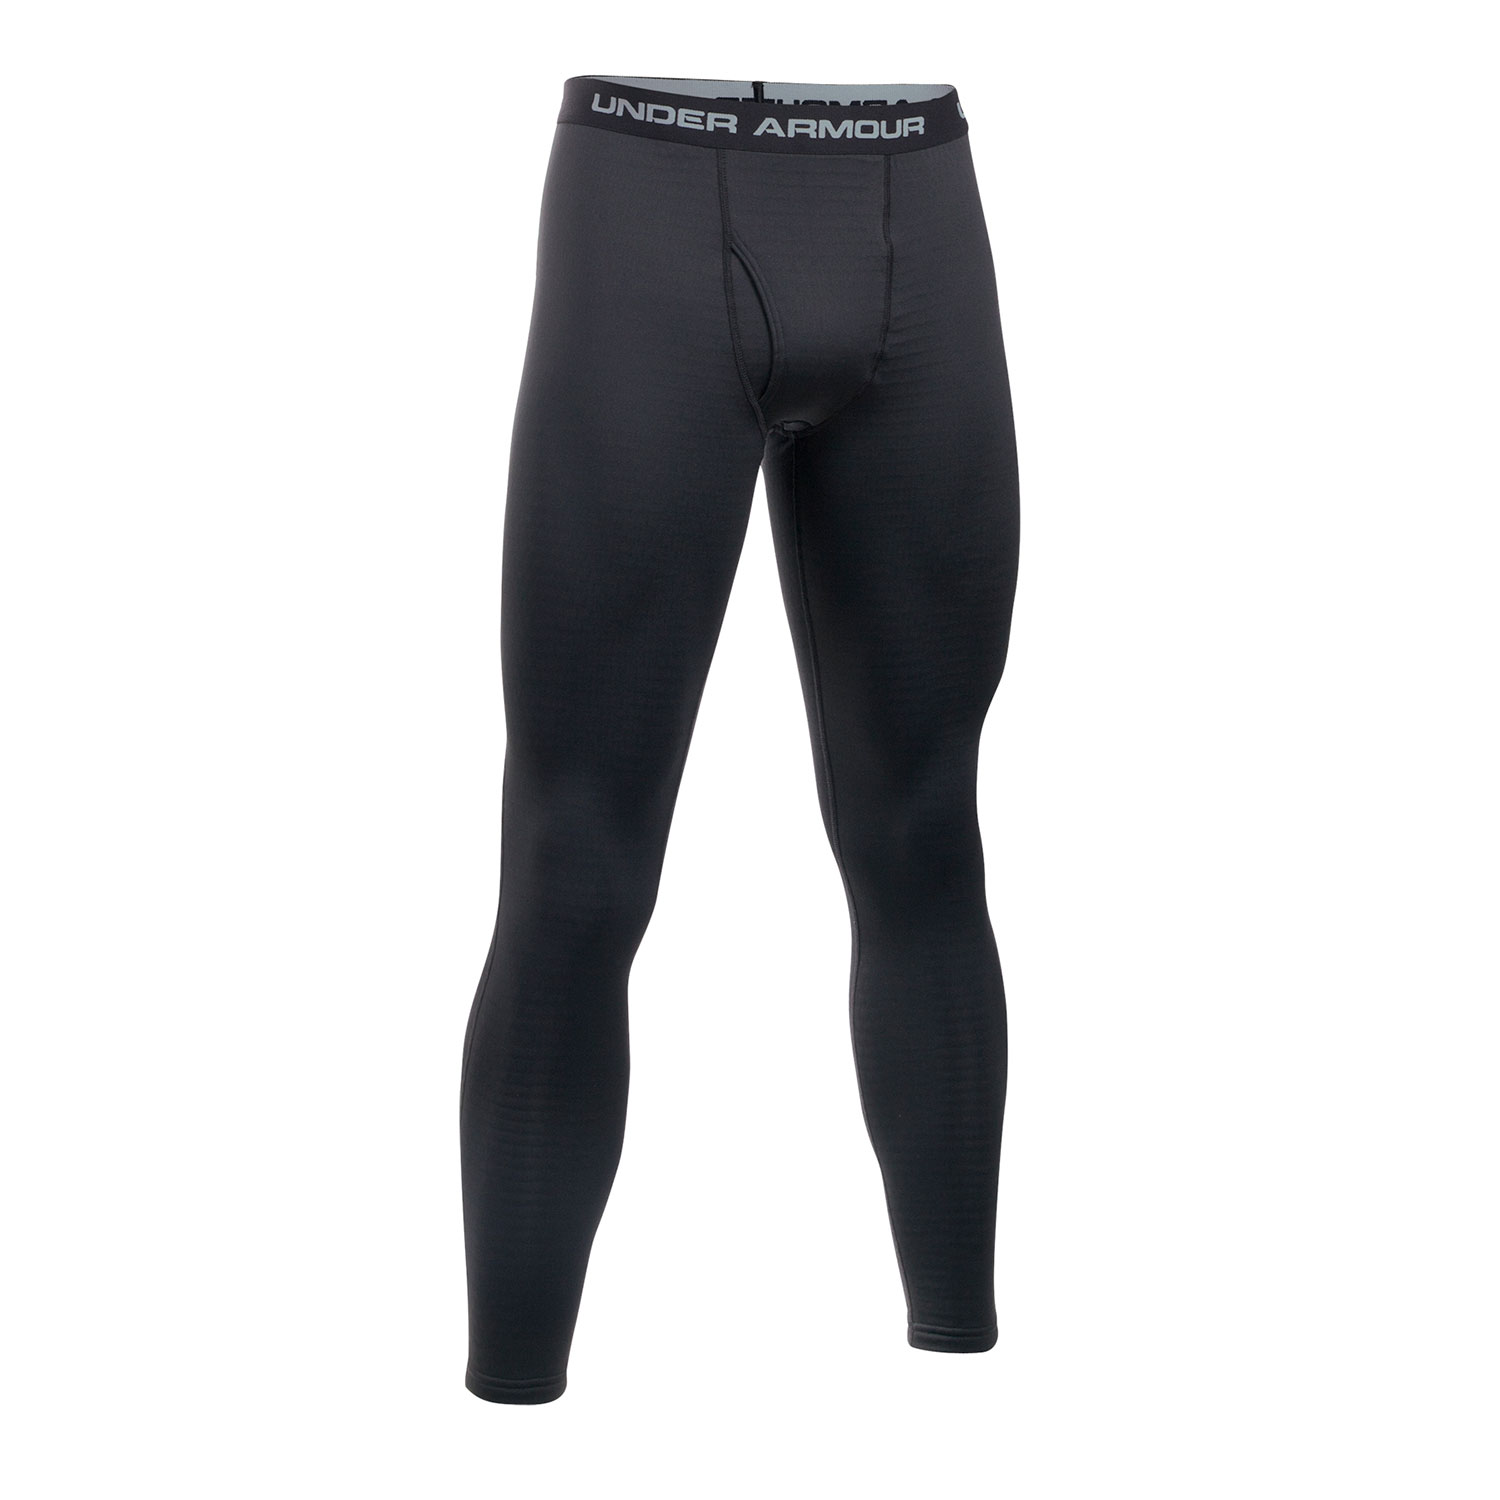 Under Armour Base 3.0 Leggings